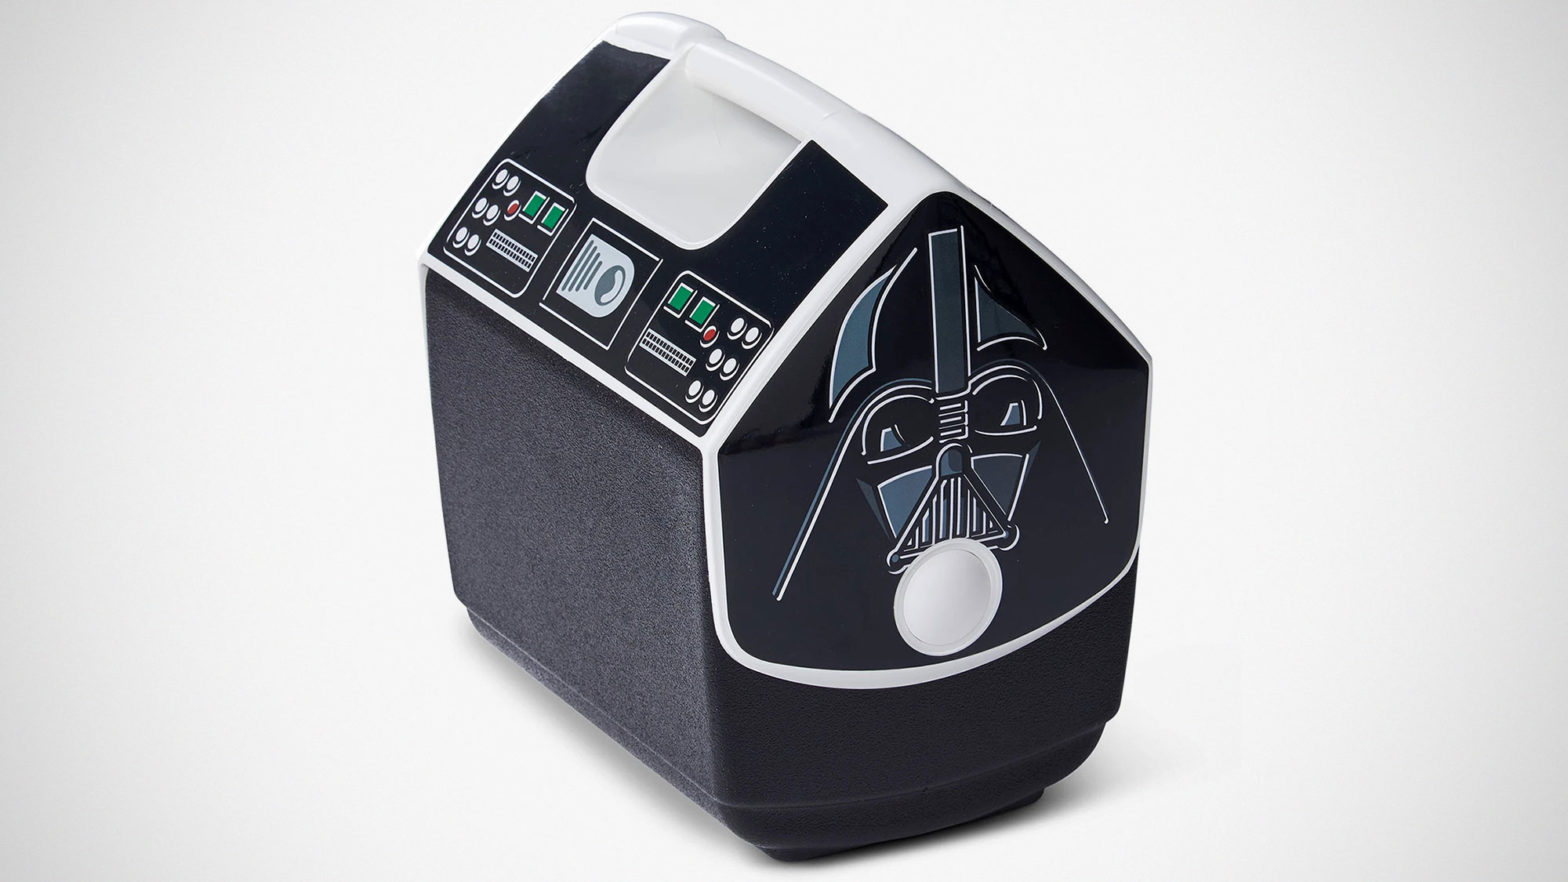 Star Wars Darth Vader Playmate Pal 7 QT Cooler